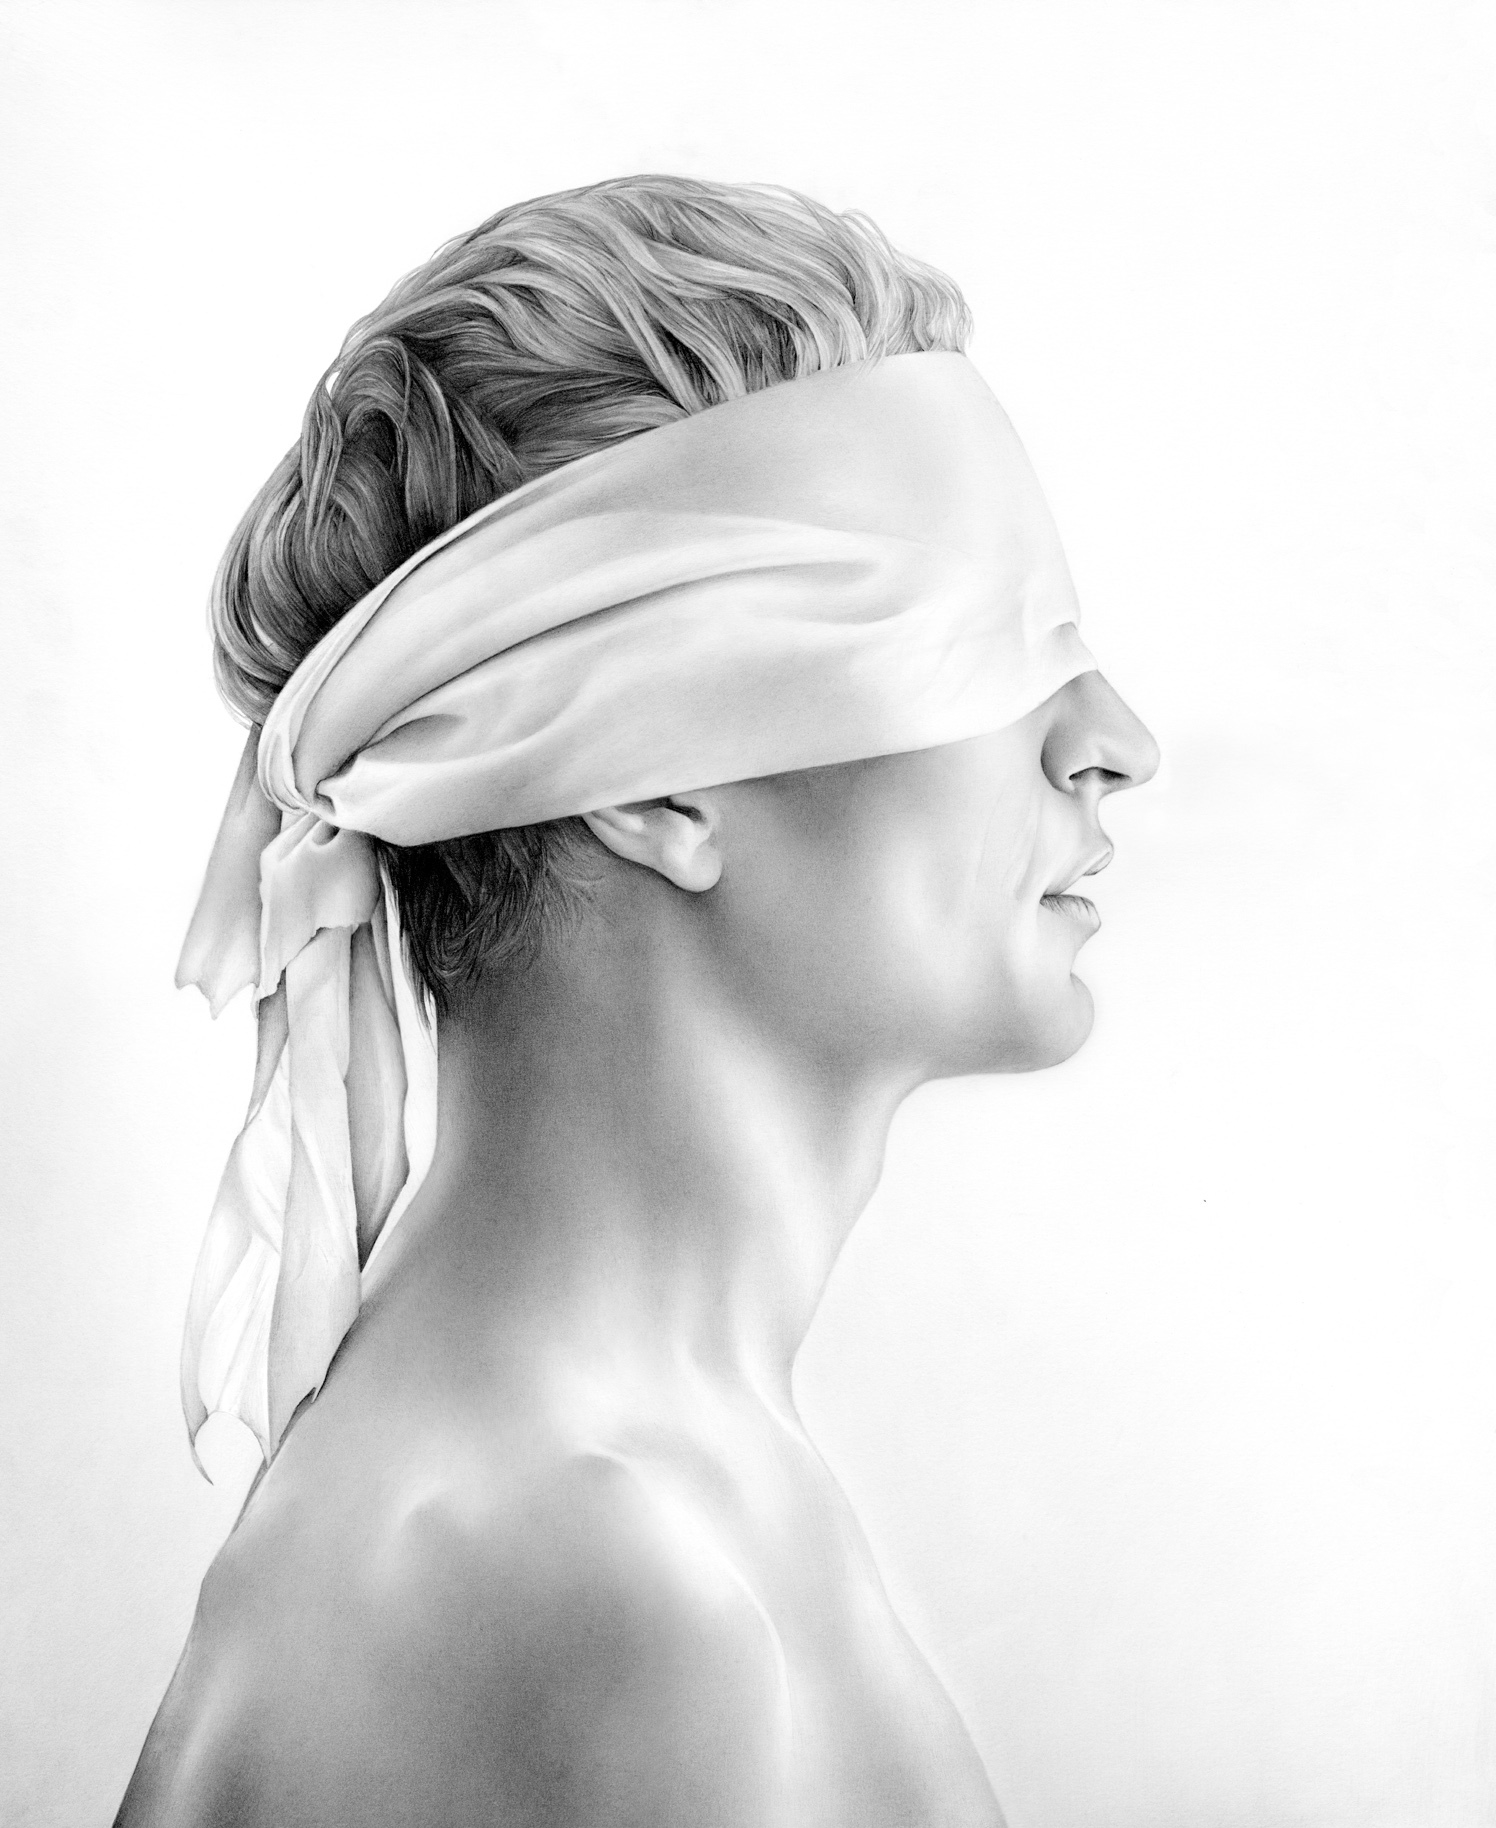 Blindfolded Man In Profile